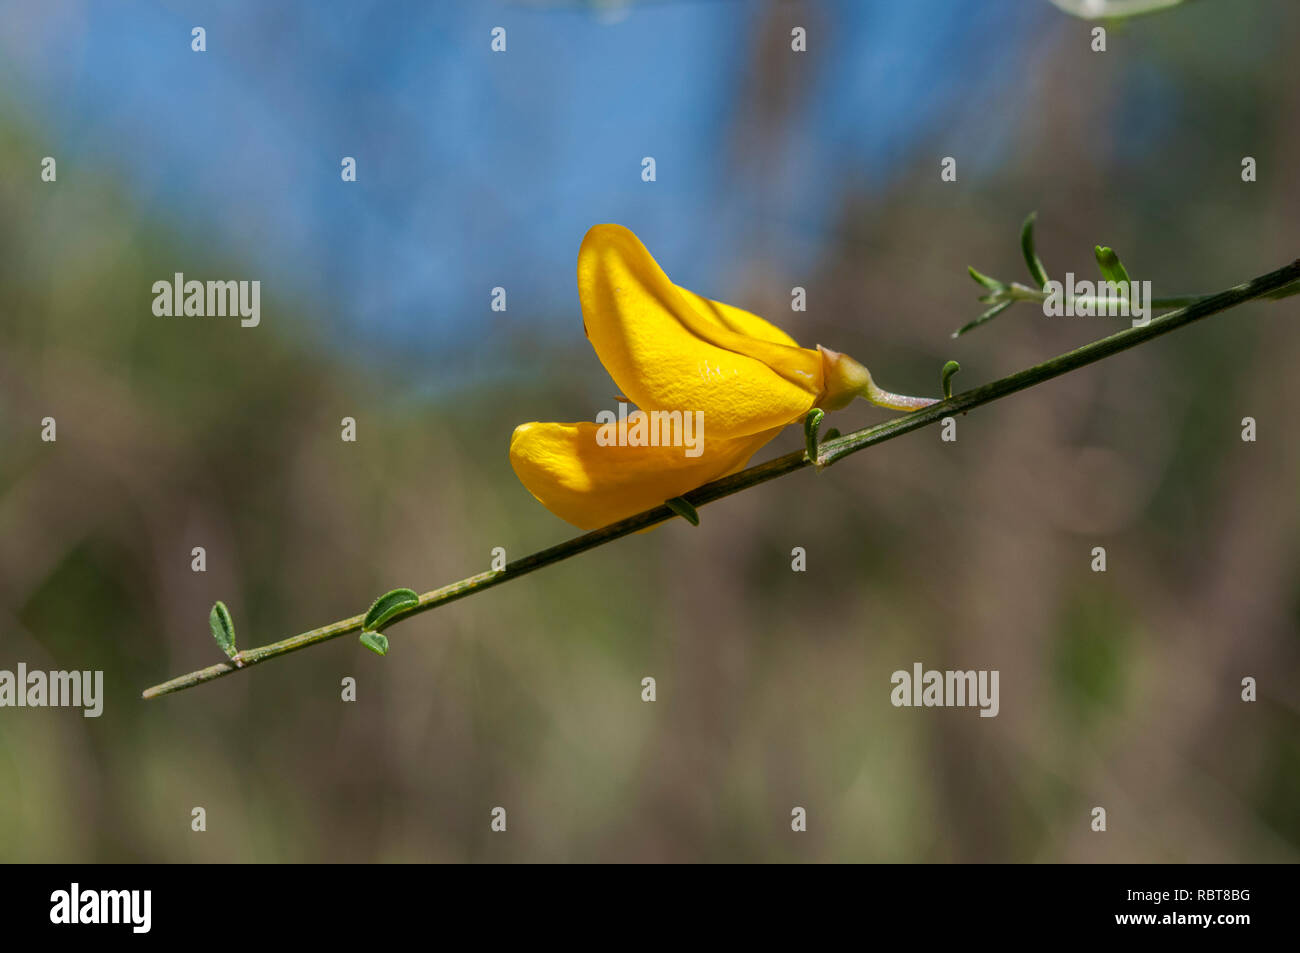 Flower of Common broom, Cytisus scoparius. It is a leguminous shrub native to western and central Europe. Stock Photo